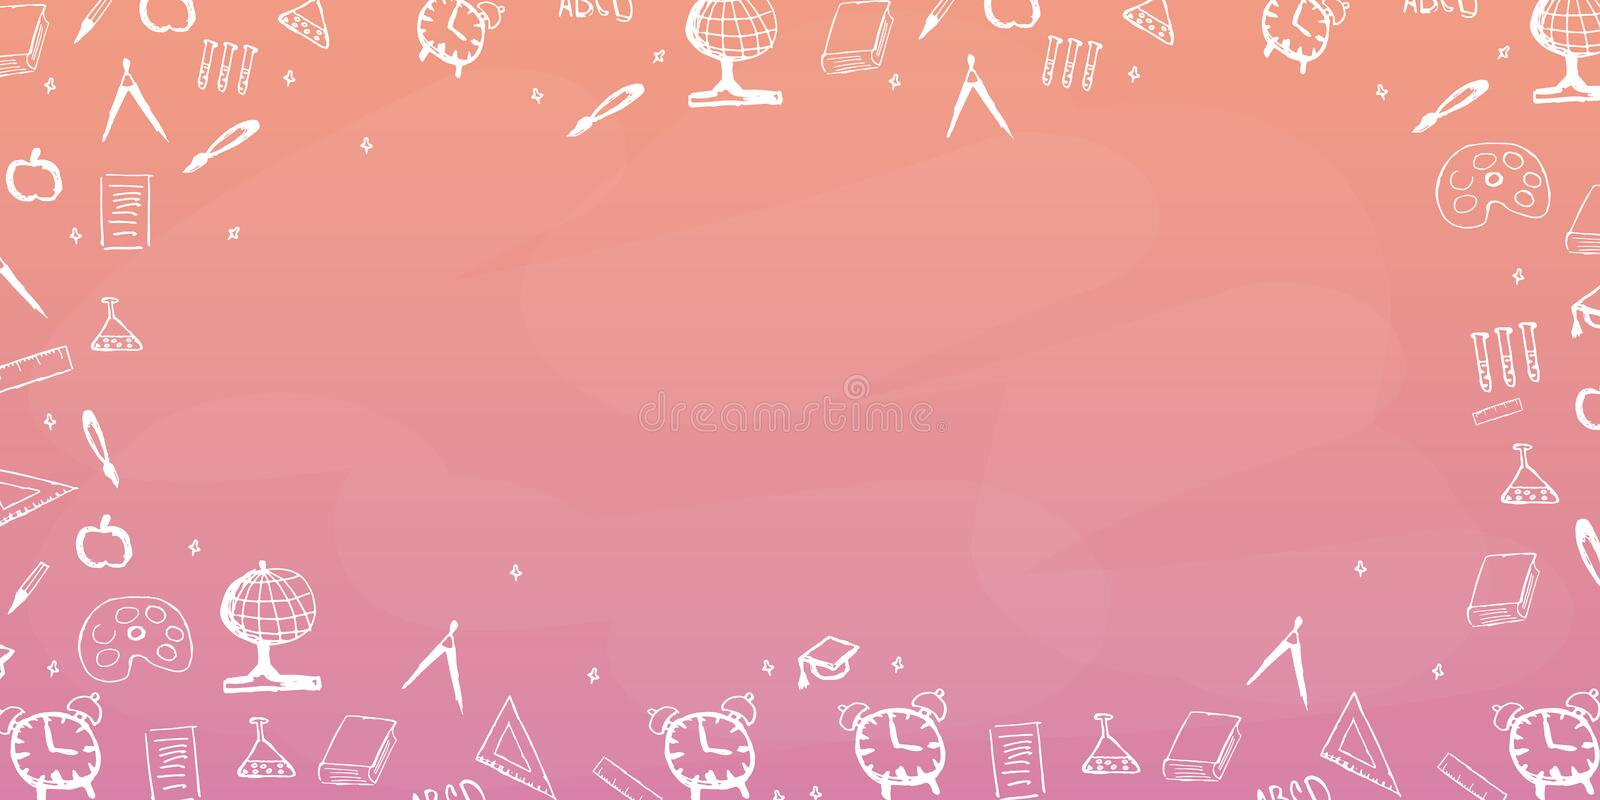 Back To School Background Education Banner Vector Illustration Stock Illustration Illustration Of Colorful Background 97790080